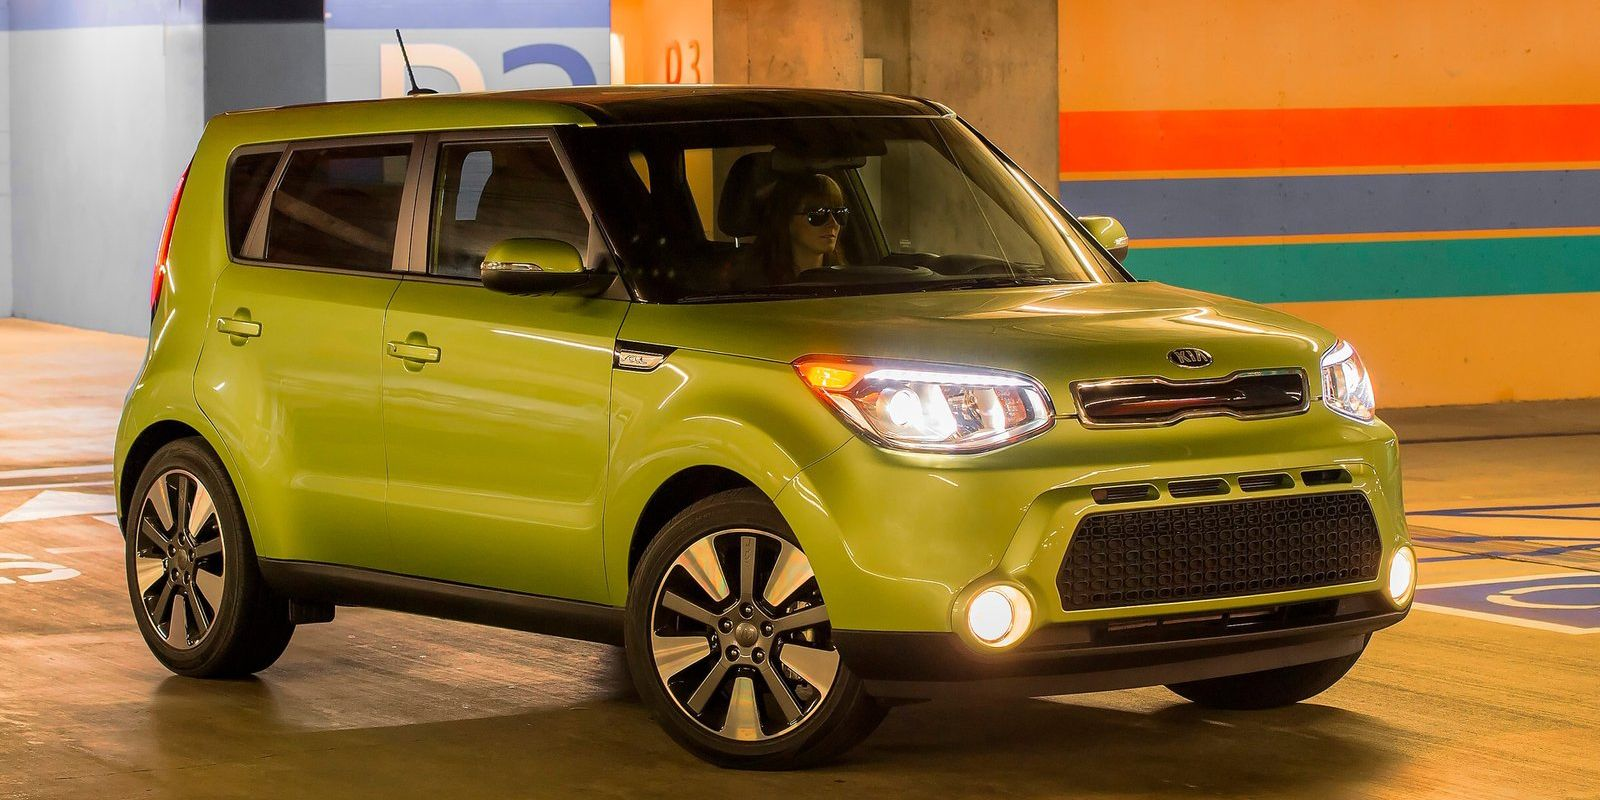 <p>The looks of Kia's funky family hauler may not be for everyone, but it's definitely a cool car that carry a lot of people and gear. The perfect car to do it all.</p>